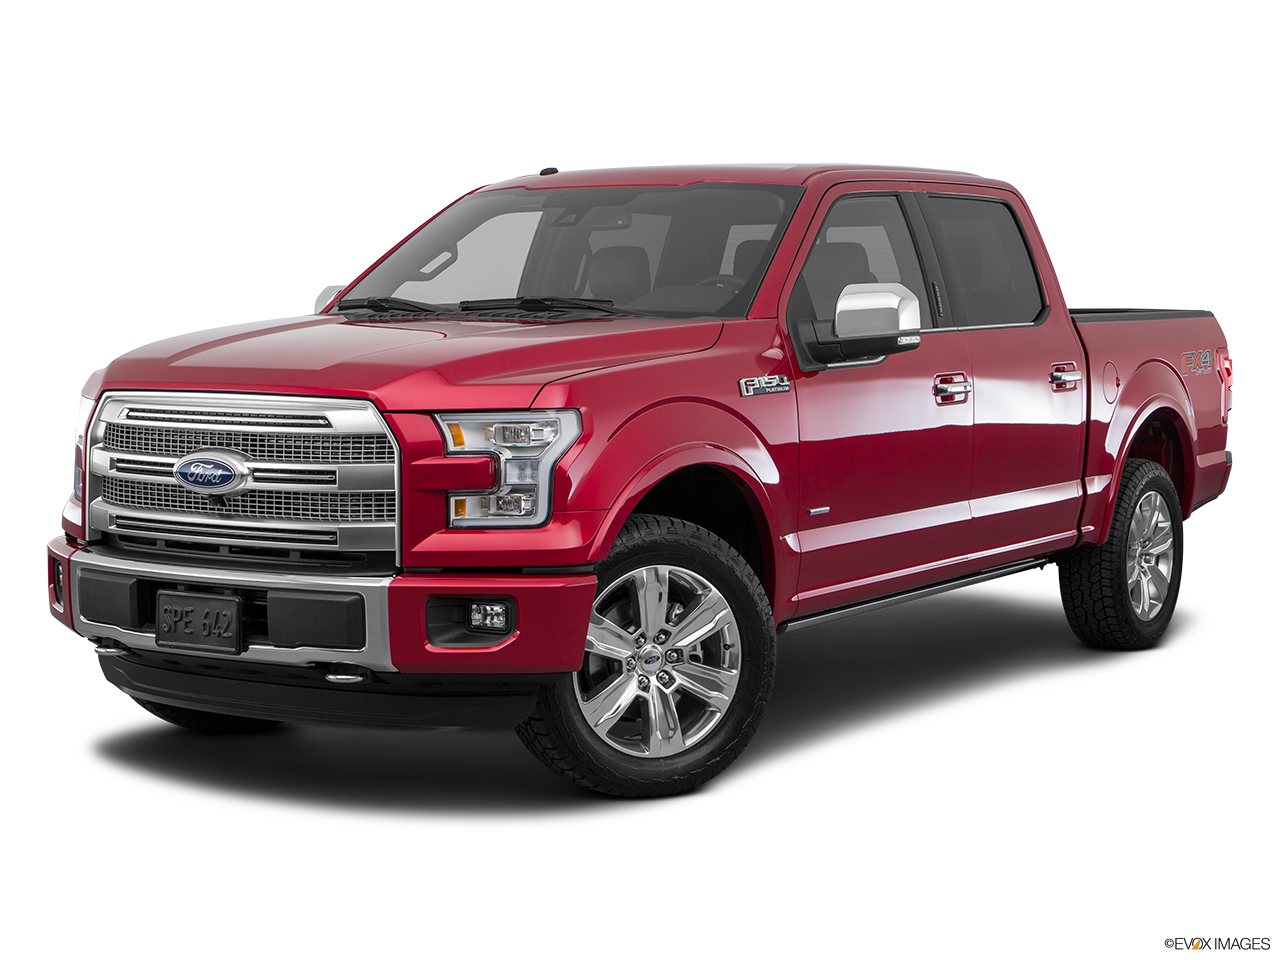 Test Drive A 2016 Ford F-150 at All Star Ford Kilgore in Kilgore